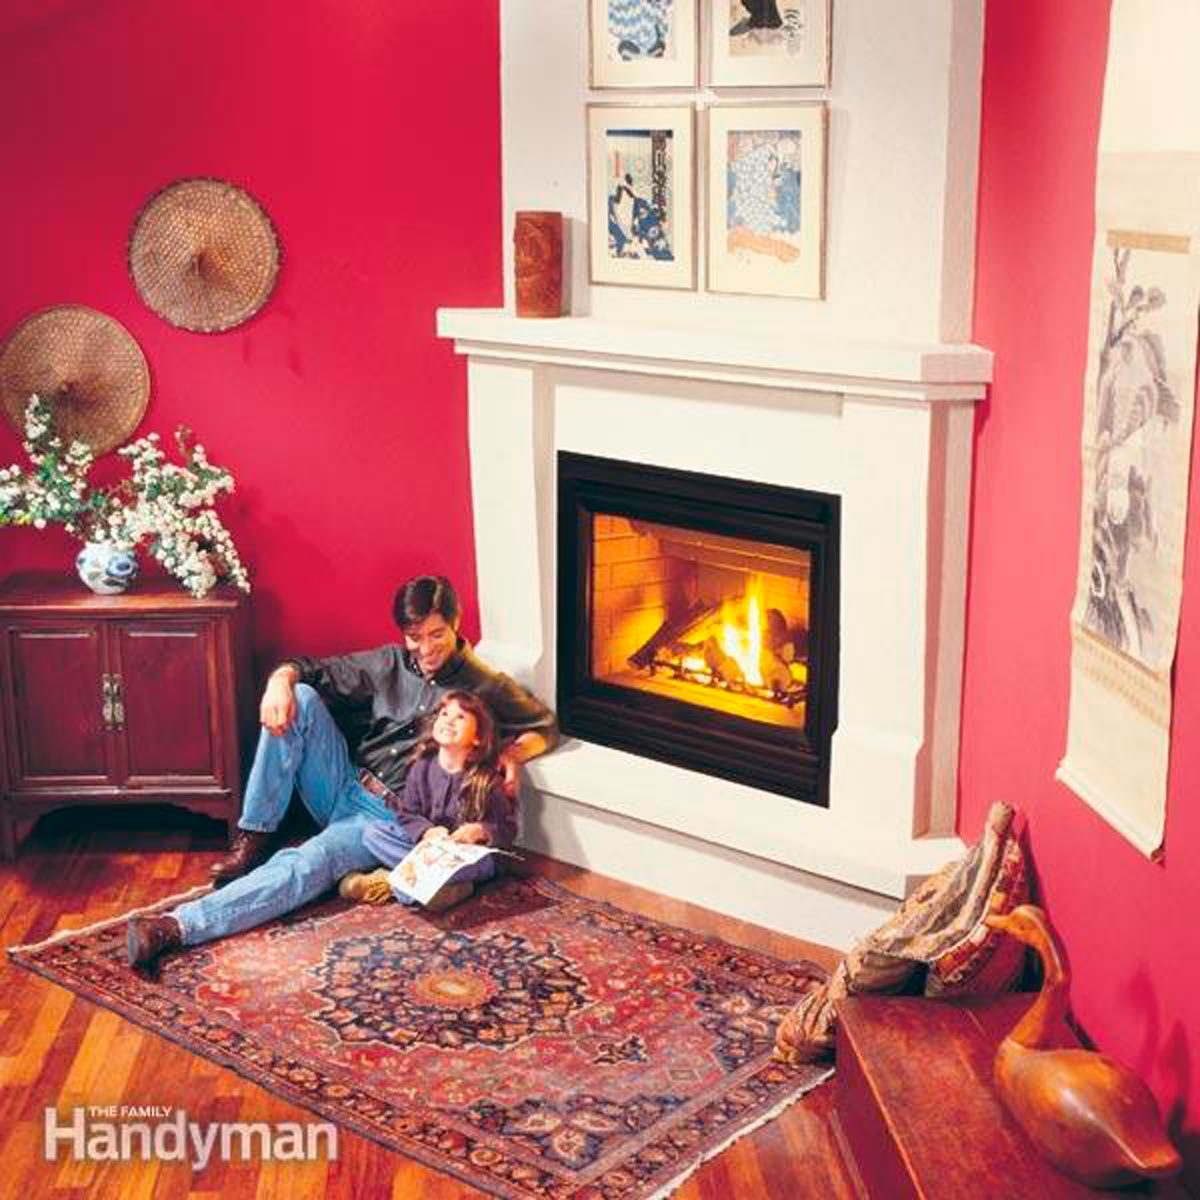 Propane Fireplace Repair Near Me How To Install A Gas Fireplace Diy Built In Gas Fireplace